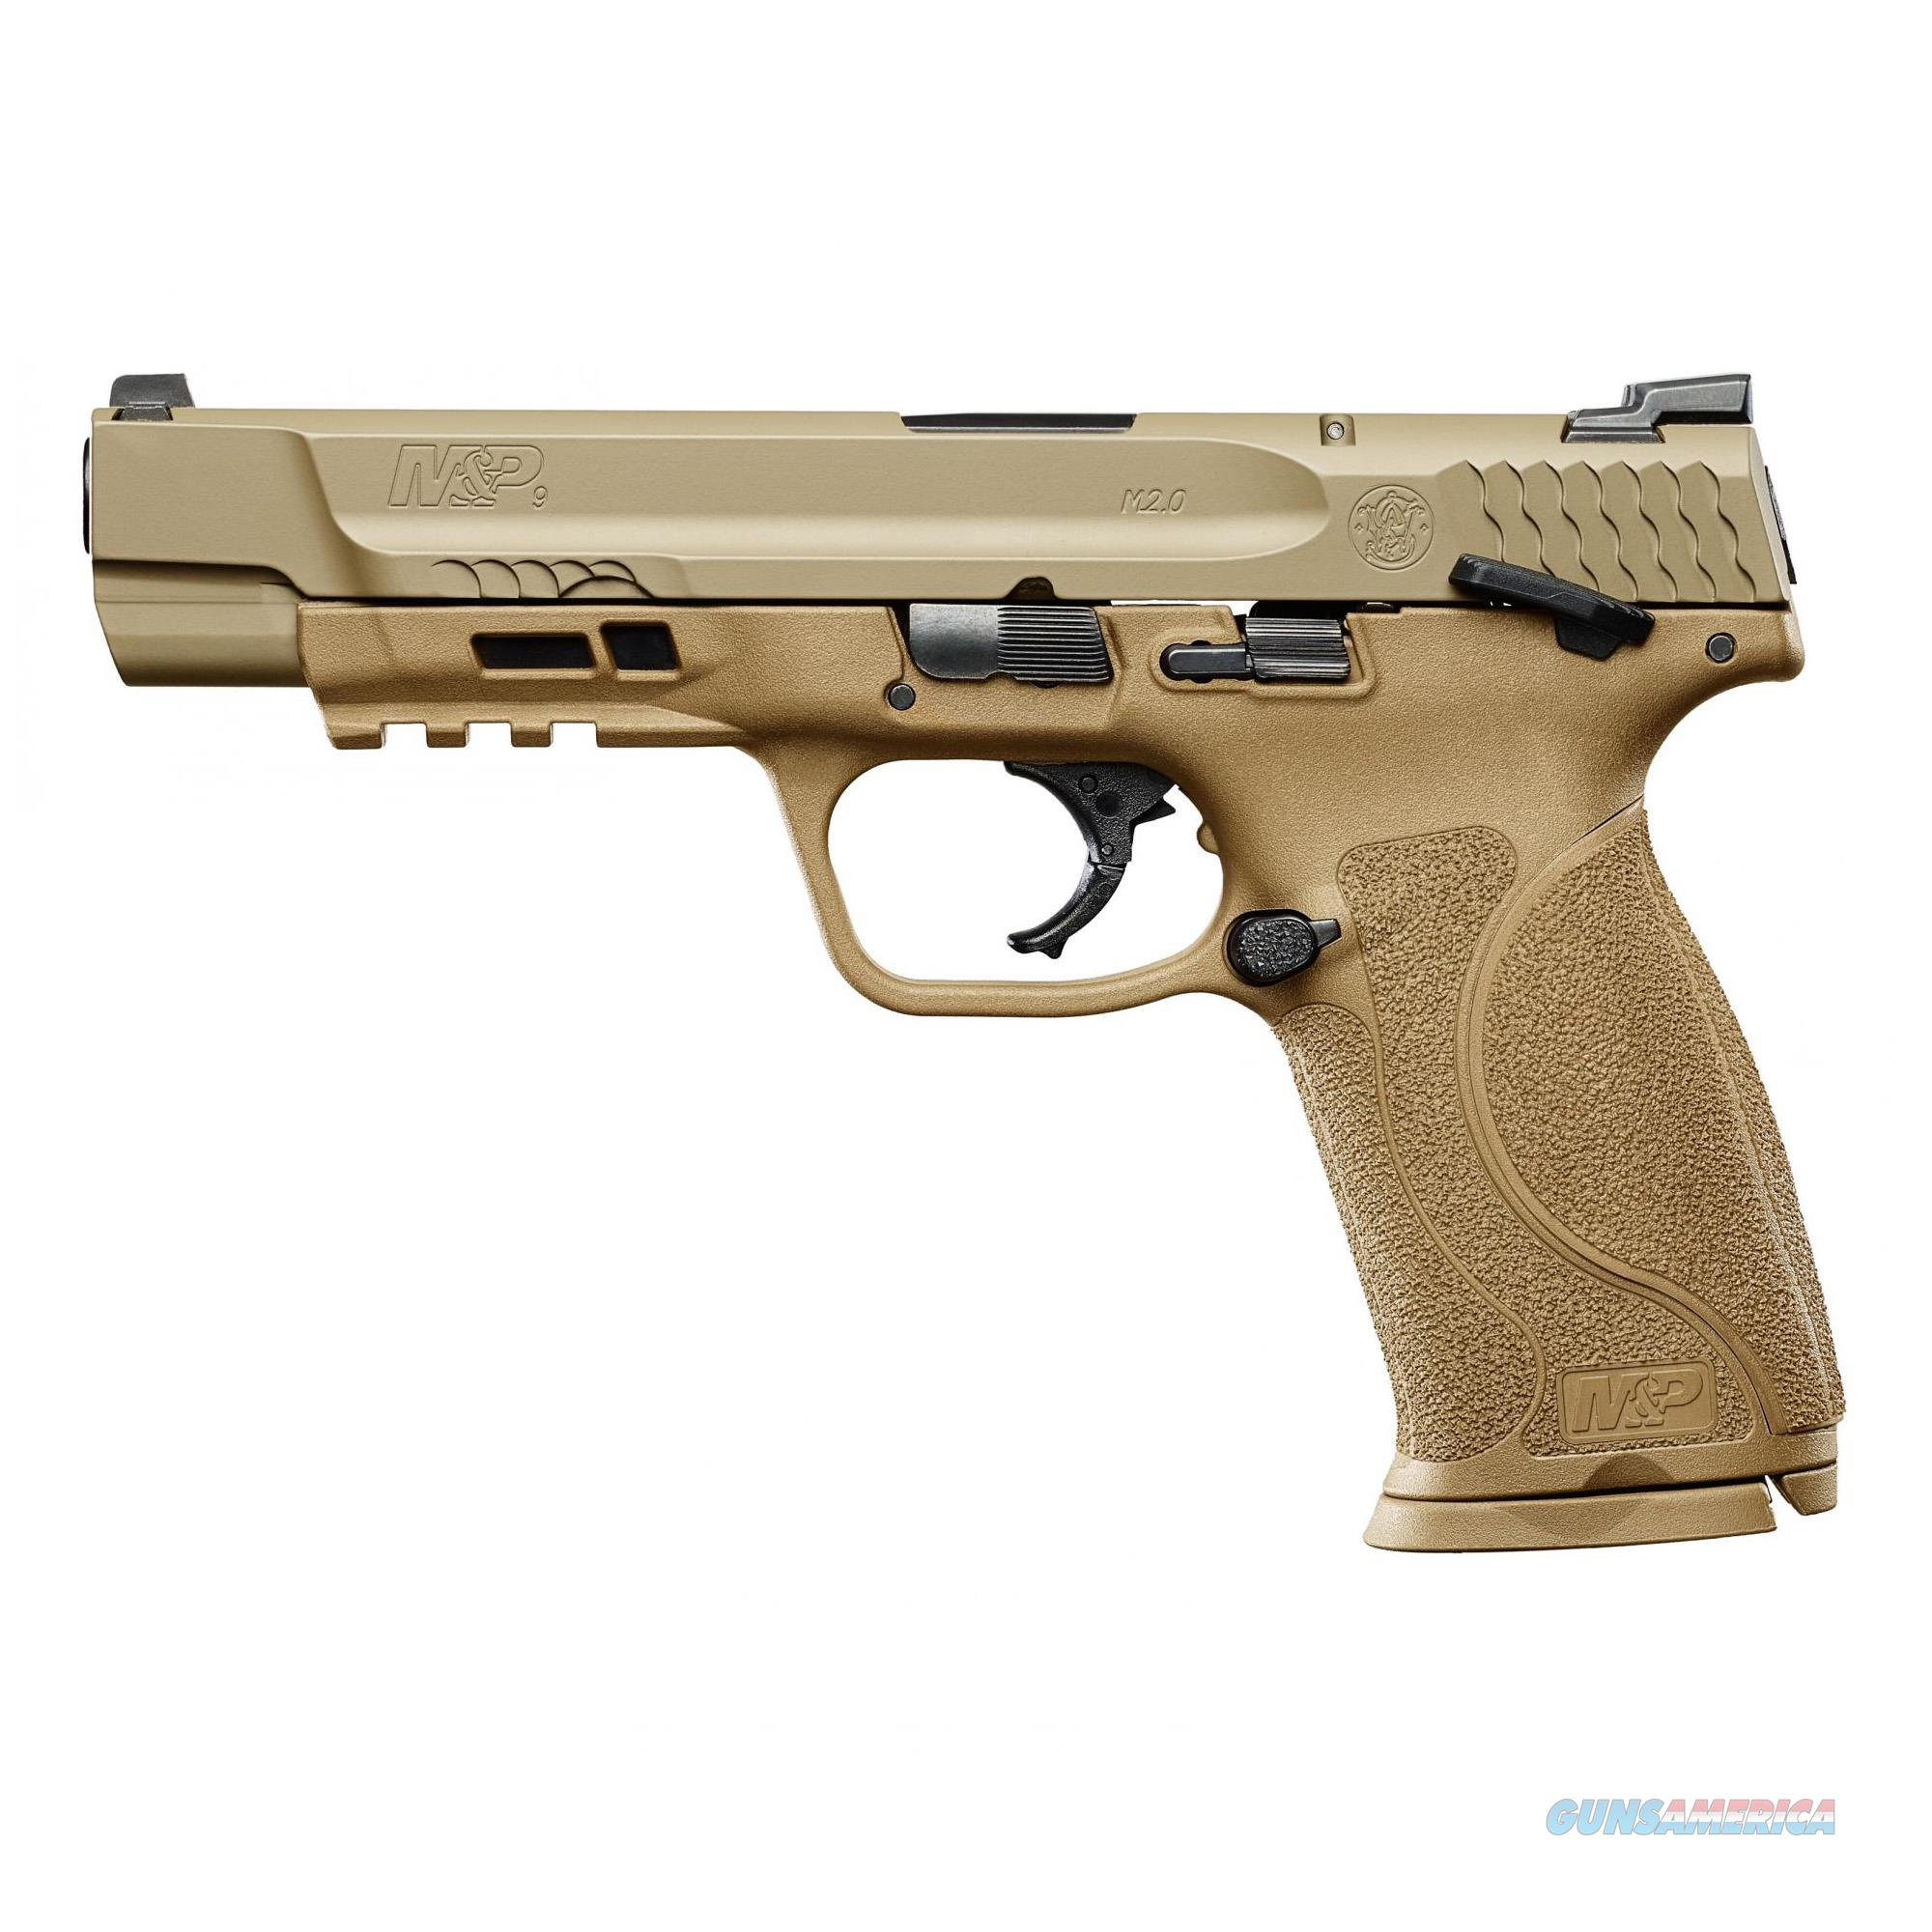 "S&W M&P 2.0 9MM 5"" 17RD FDE NMS TS Smith&Wesson 11537  Guns > Pistols > Smith & Wesson Pistols - Autos > Polymer Frame"